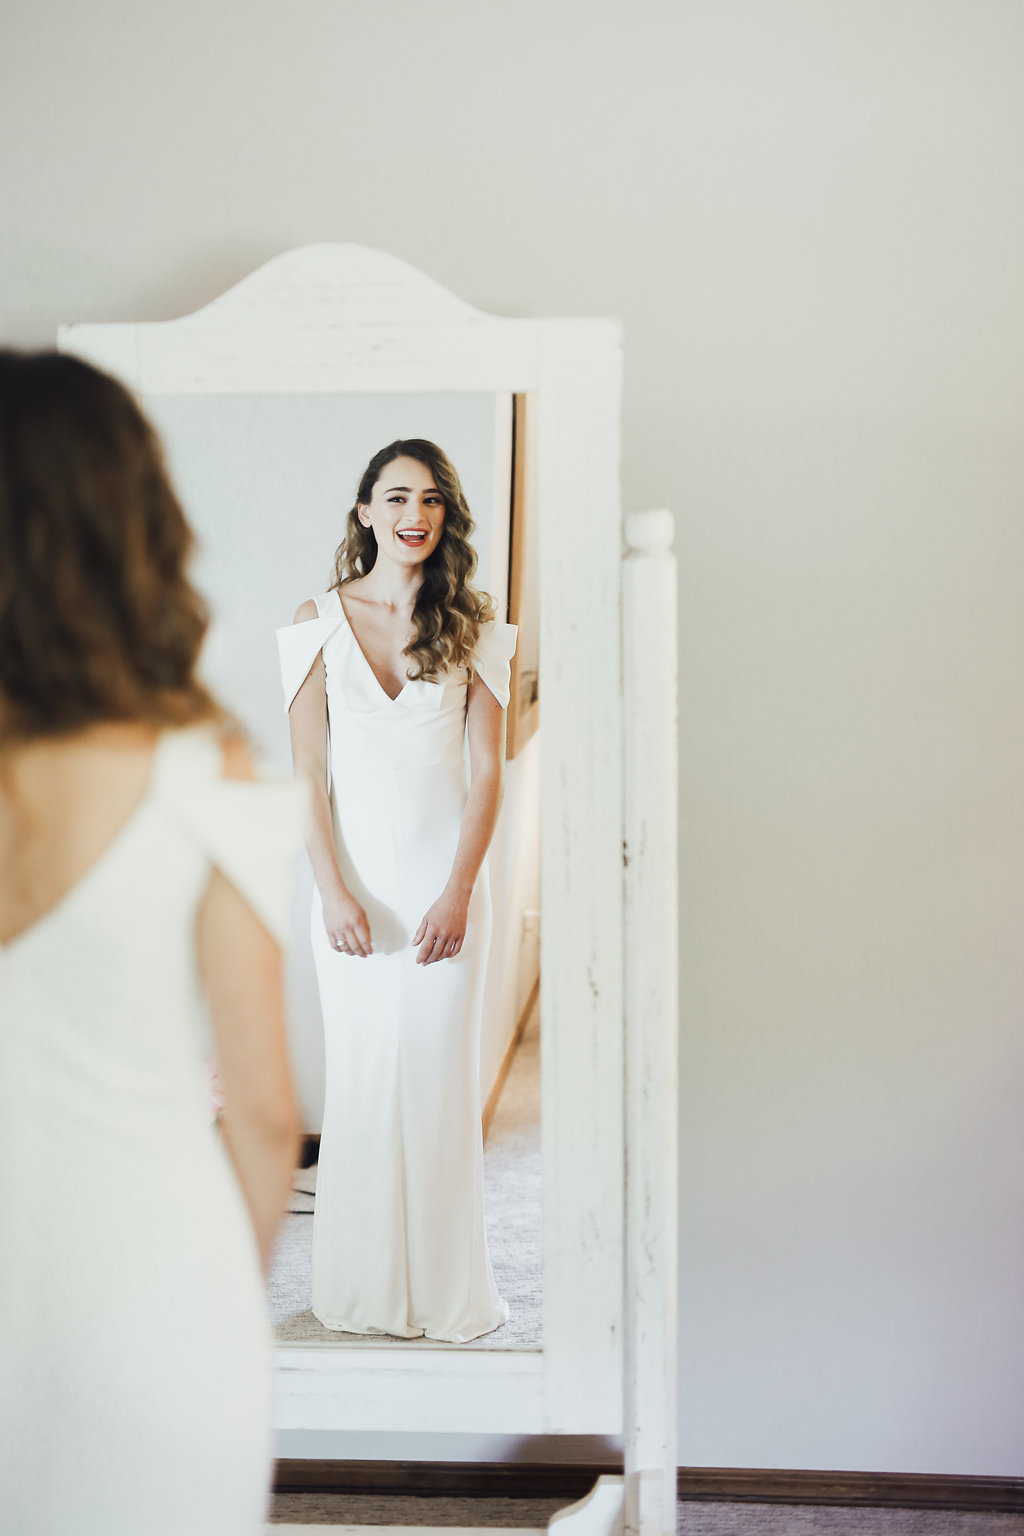 Victoria+Caleb-Wedding-RachelPhotographs-GettingReady-46